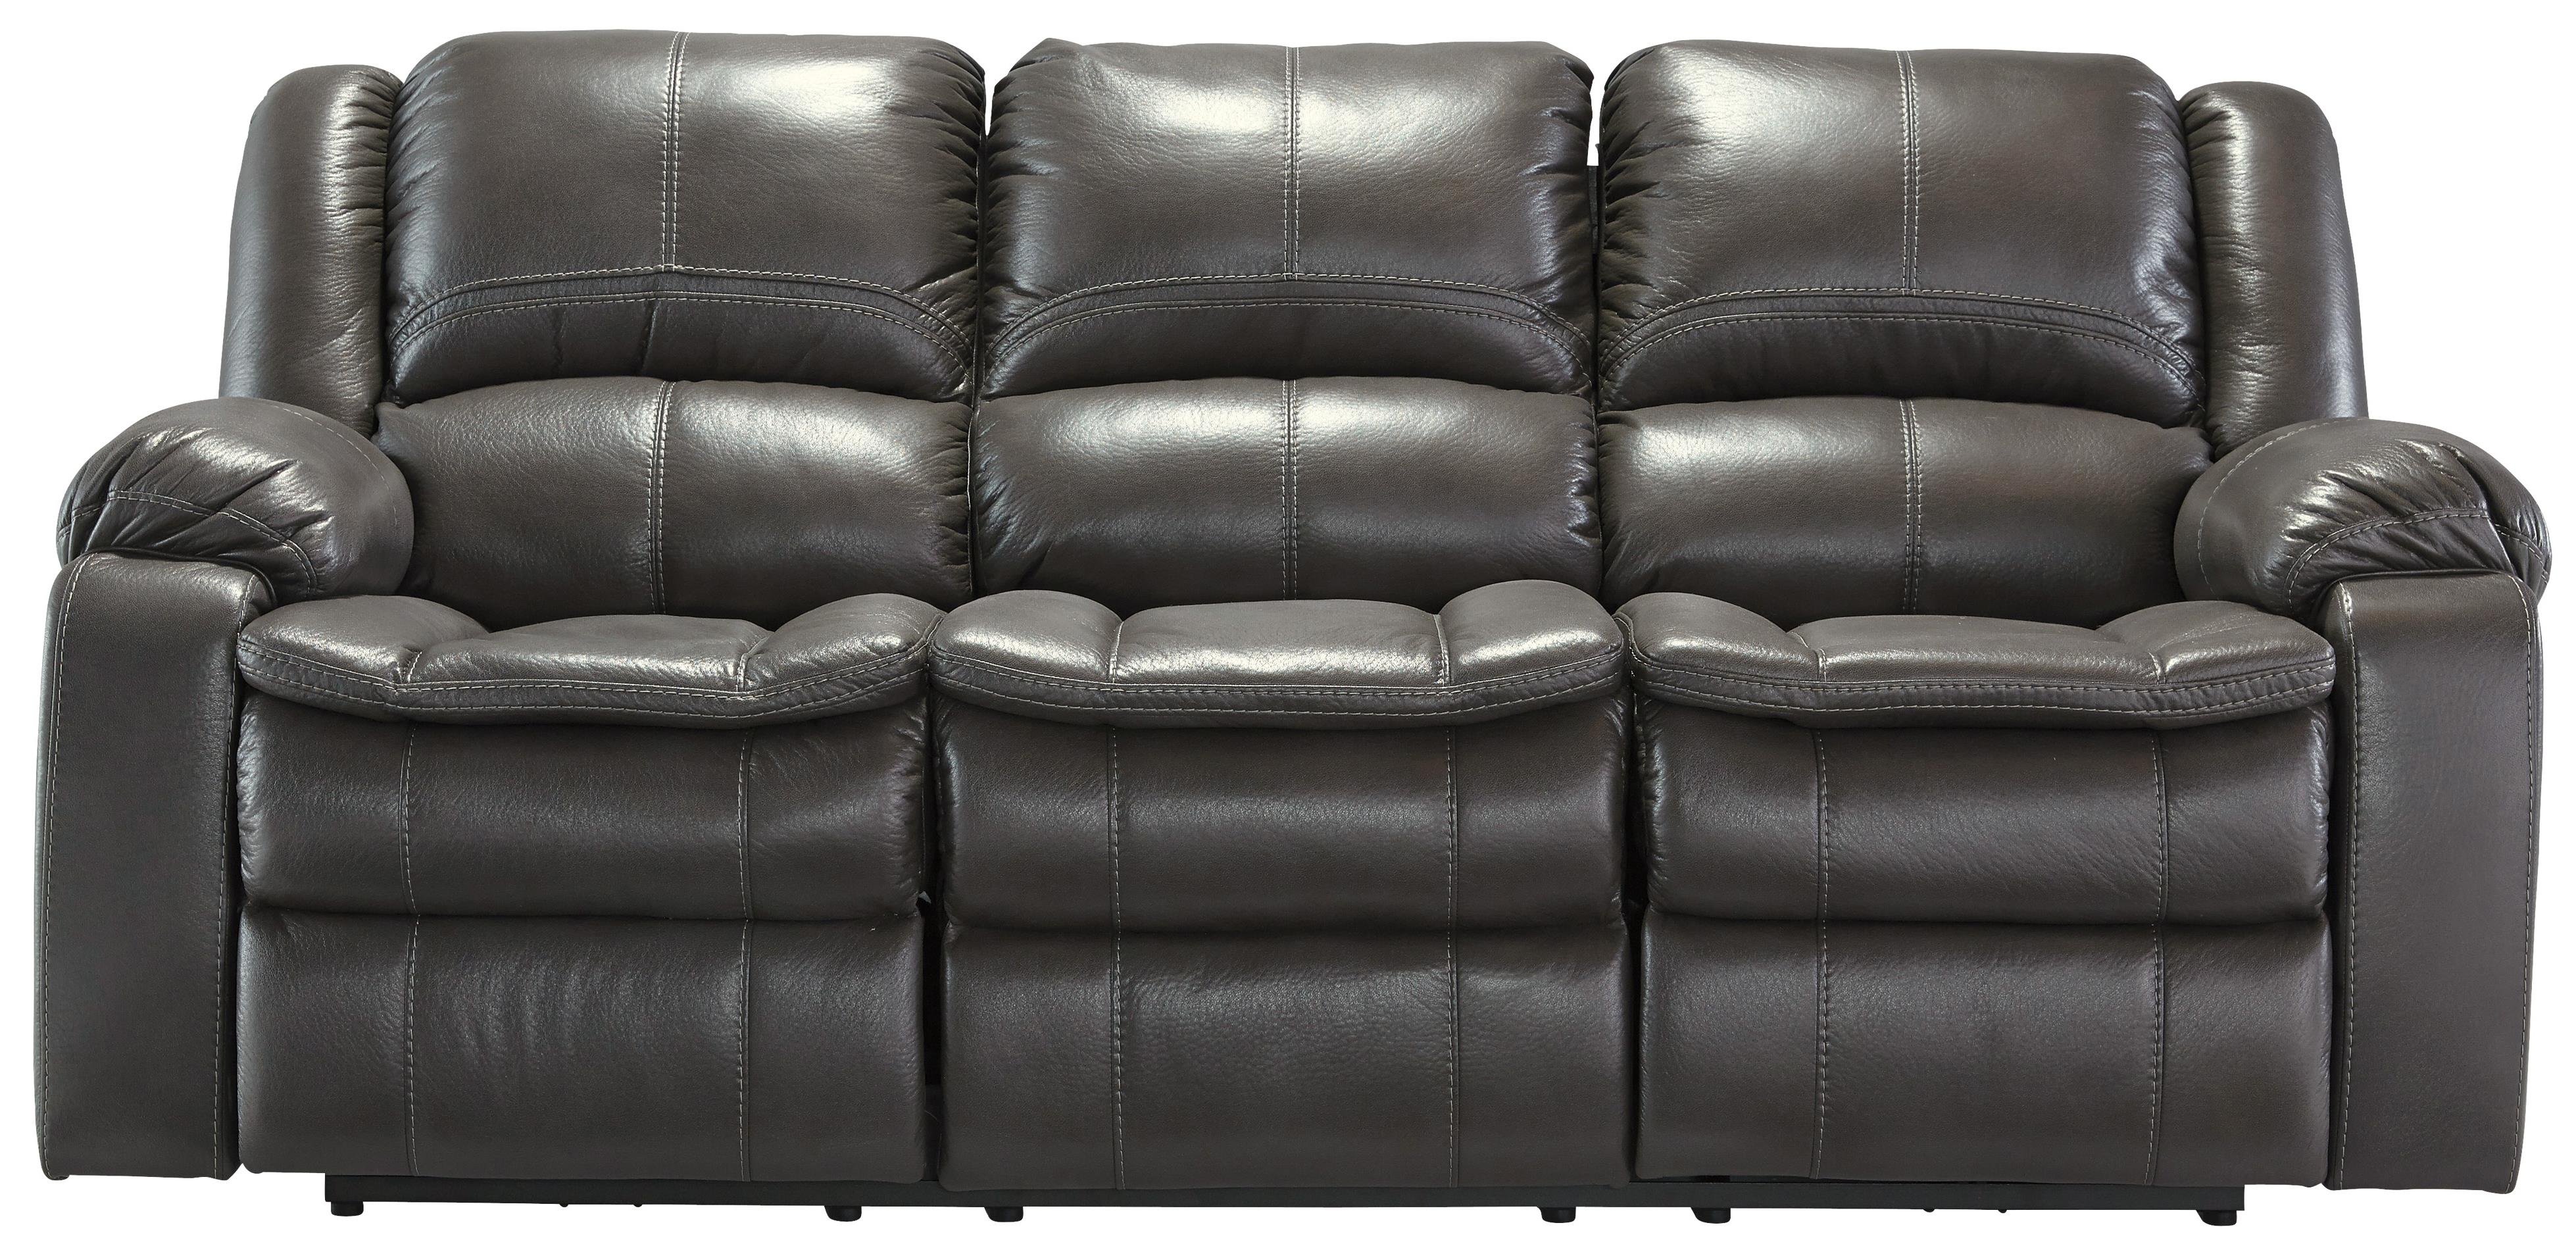 Signature Design by Ashley Long Knight Reclining Power Sofa - Item Number: 8890687